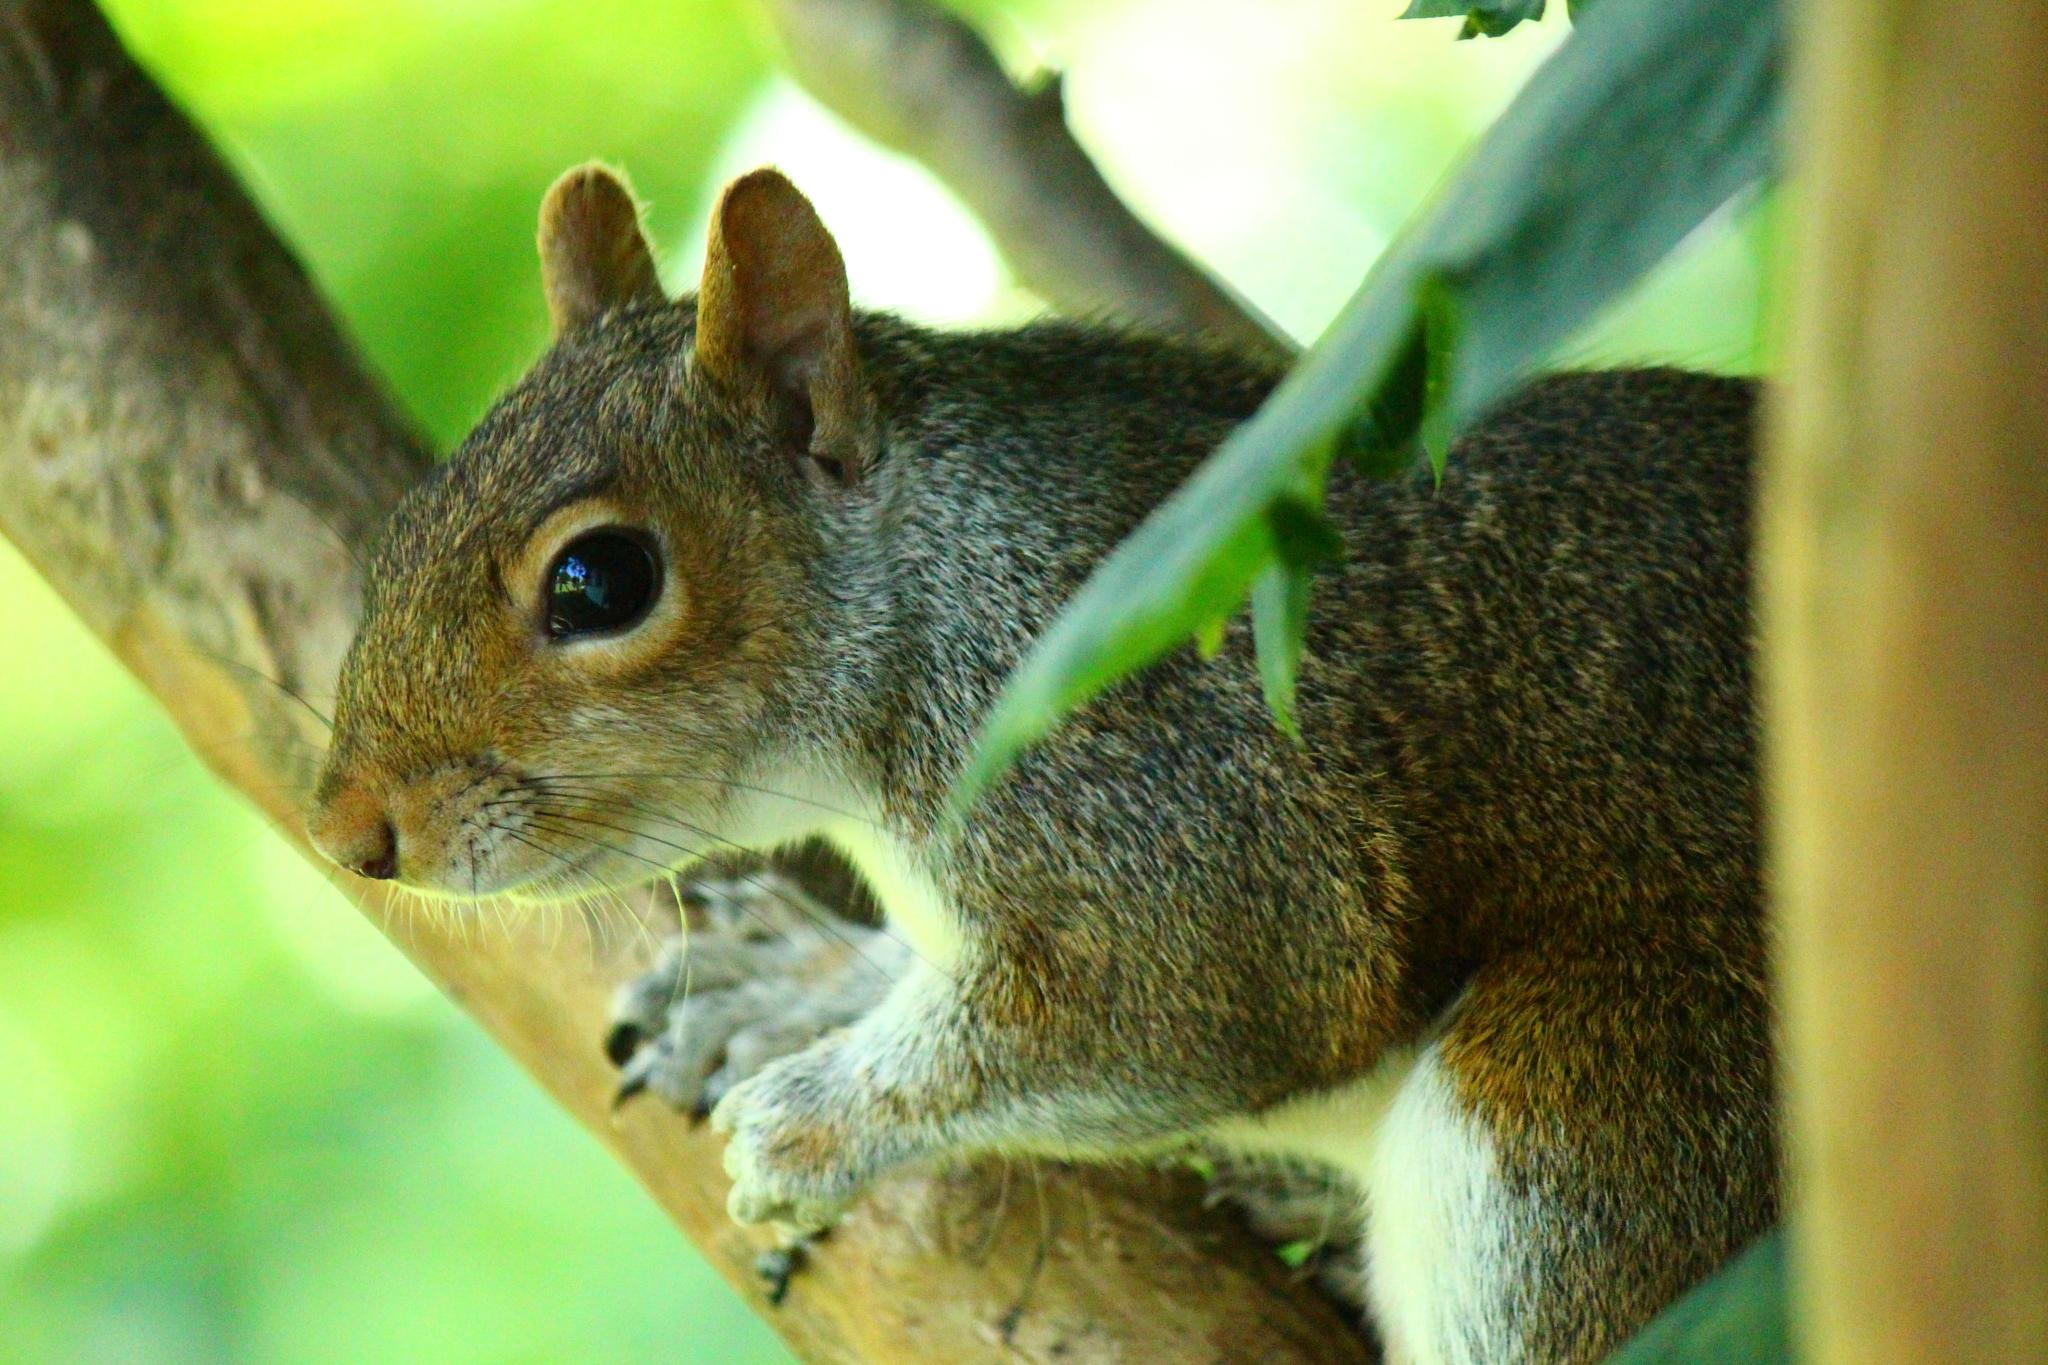 Squirrel stare by Clark L. Roberts